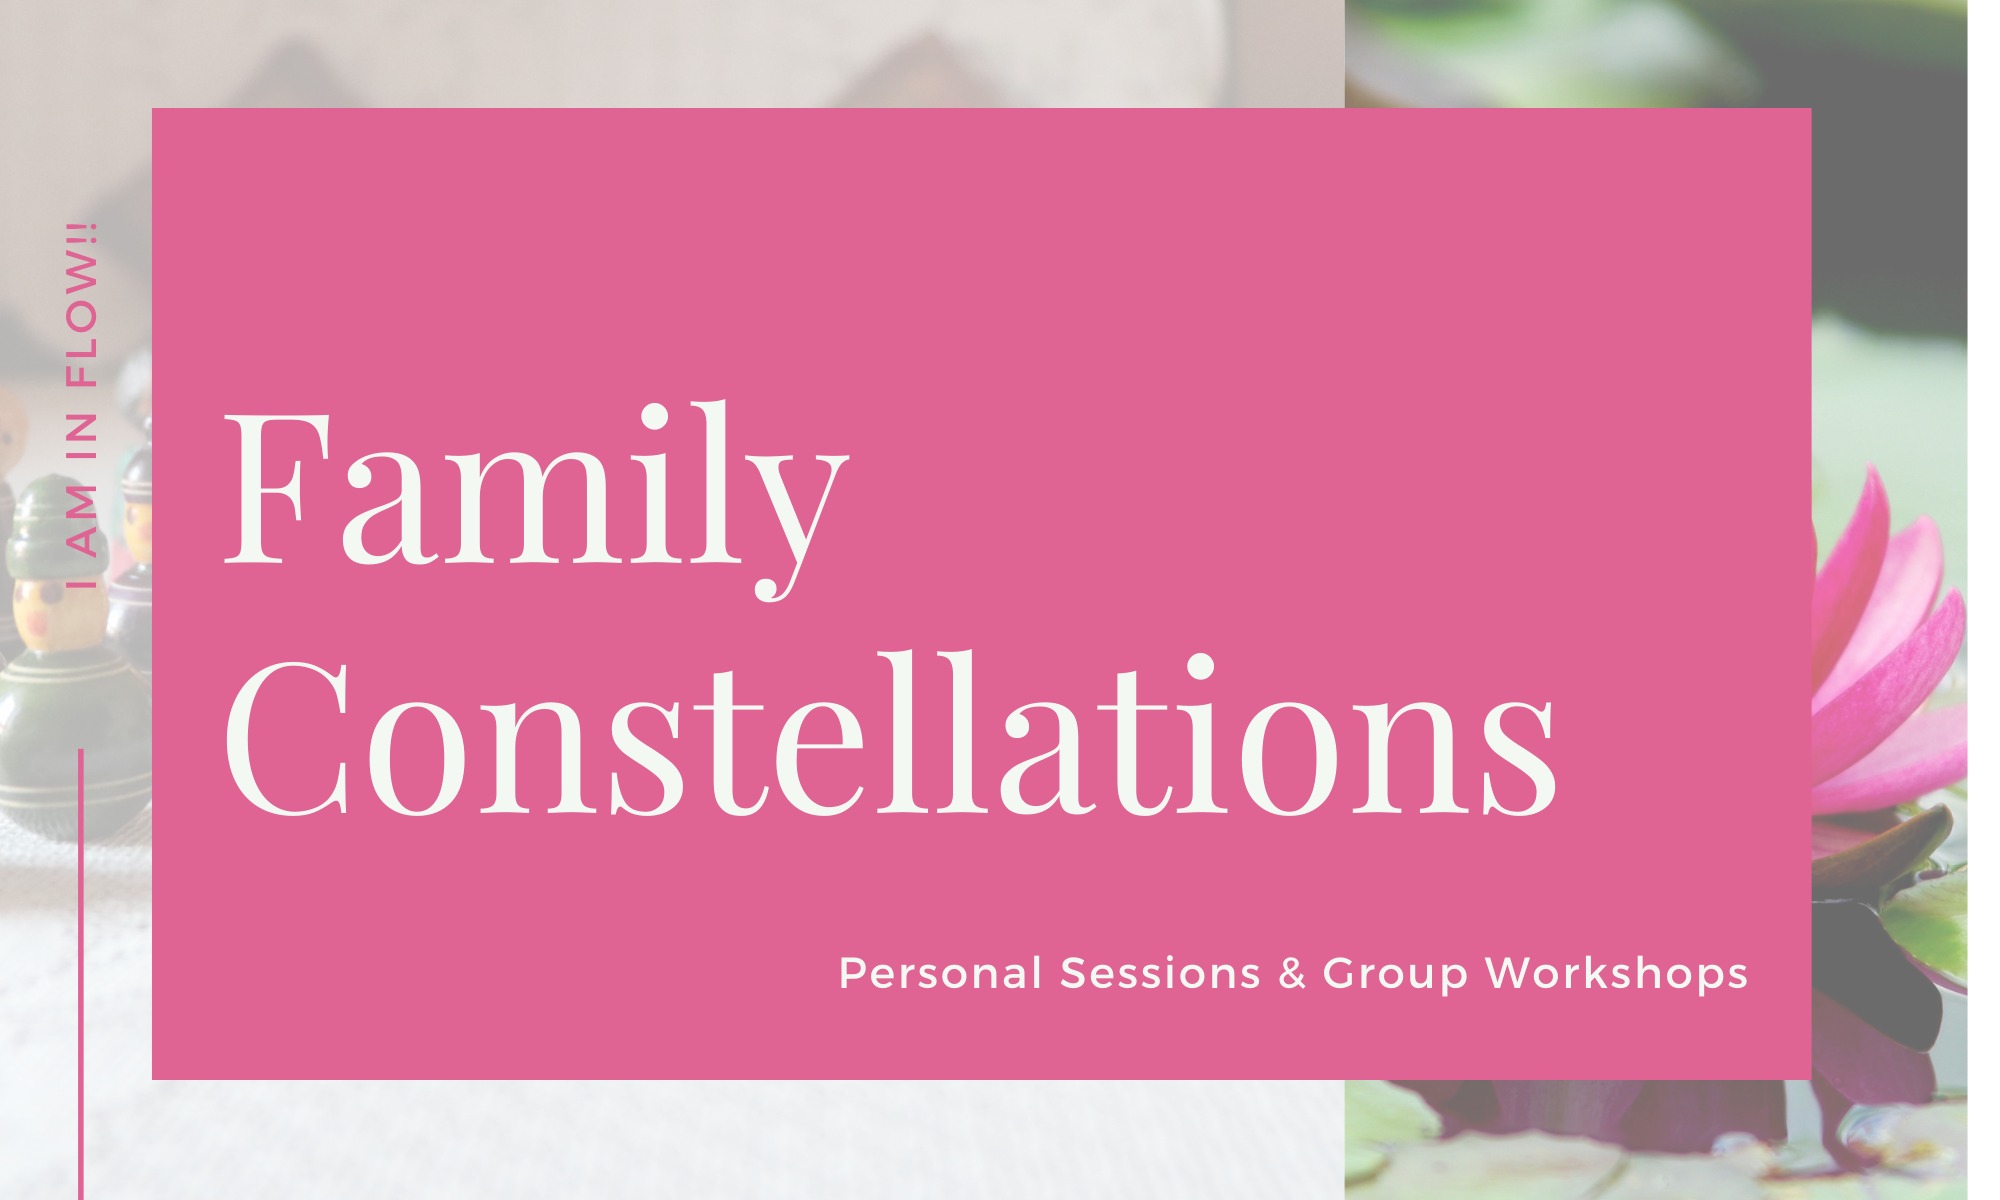 Personal Sessions & Group Workshops